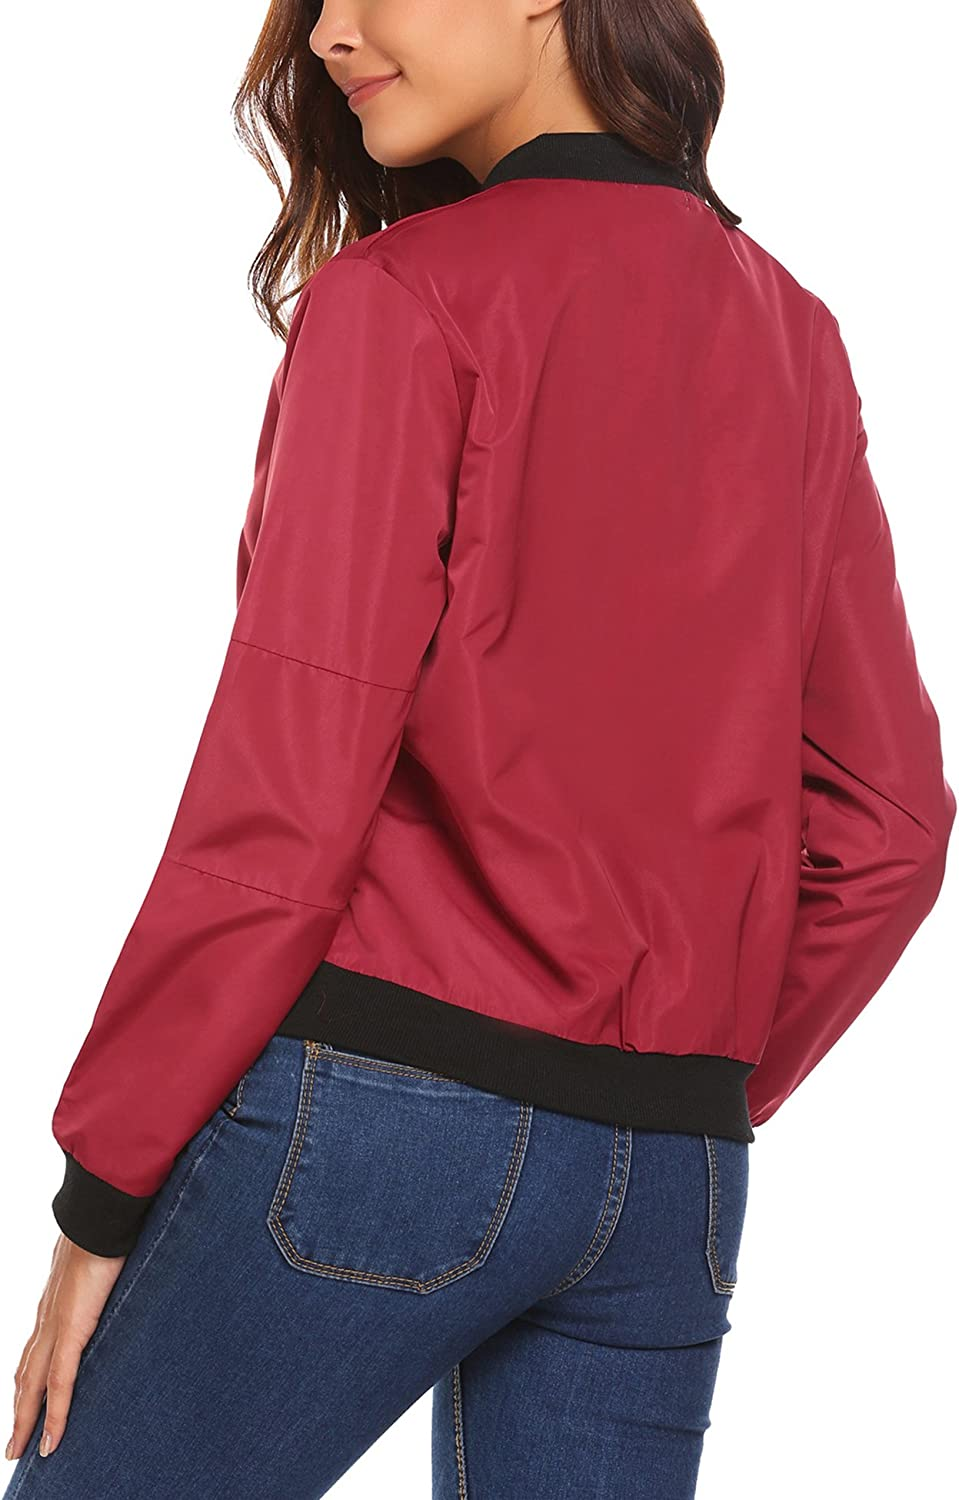 HOTOUCH Womens Bomber Jacket Classic Zip Up Biker Vintage Short Jacket+Pockets